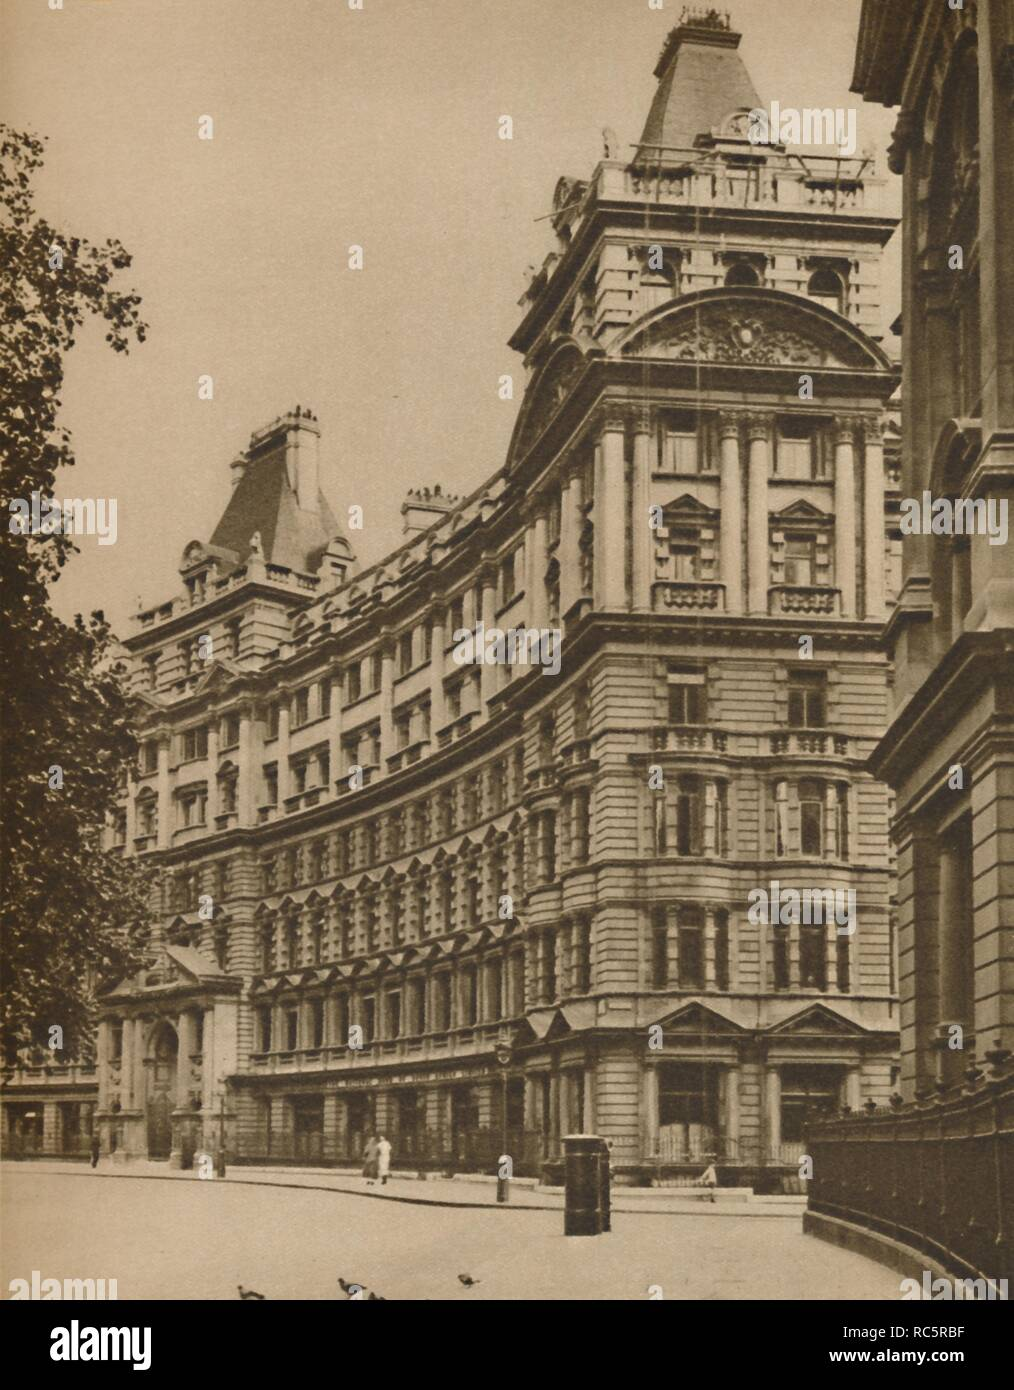 """'Salisbury House: Palatial Business Premises in the City', c1935. Buildings in Finsbury Circus, Moorgate, City of London. Salisbury House was designed by Davis and Emmanuel in 1899-1901. From """"Wonderful London, Volume 2"""", edited by Arthur St John Adcock. [The Fleetway House, London, c1935] - Stock Image"""